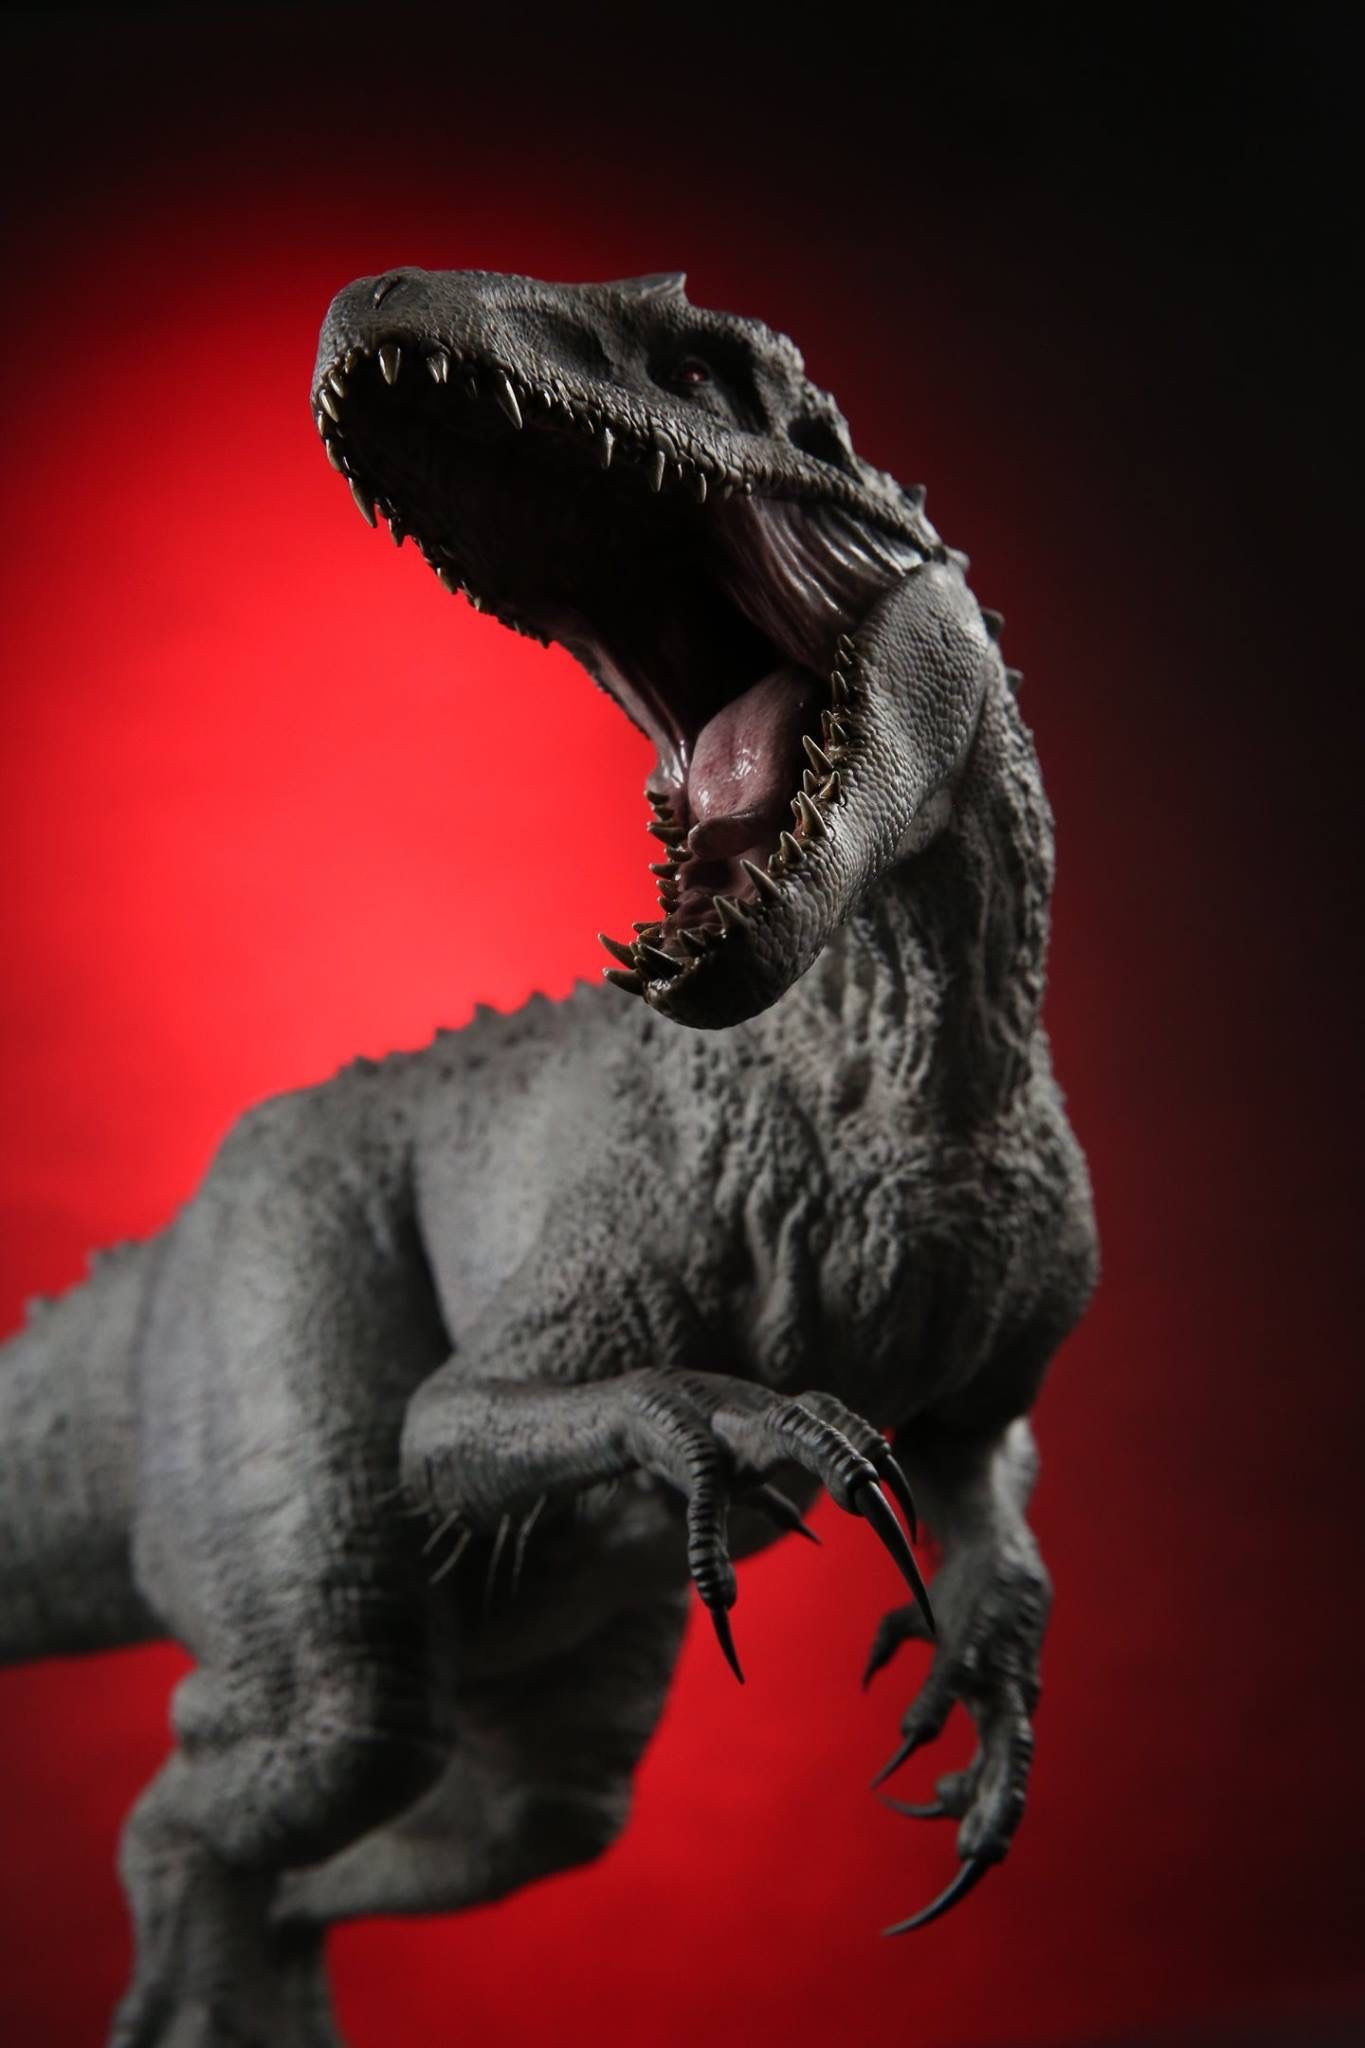 Indominus Rex By Chronicle Collectibles Revealed At Sdcc 2017 Dinosaurios Jurassic World Dinosaurios Jurassic Park Dinosaurios De Jurassic Park Aproximadamente siete (7) pulgadas de alto, y doce (12) pulgadas de largo. dinosaurios jurassic world